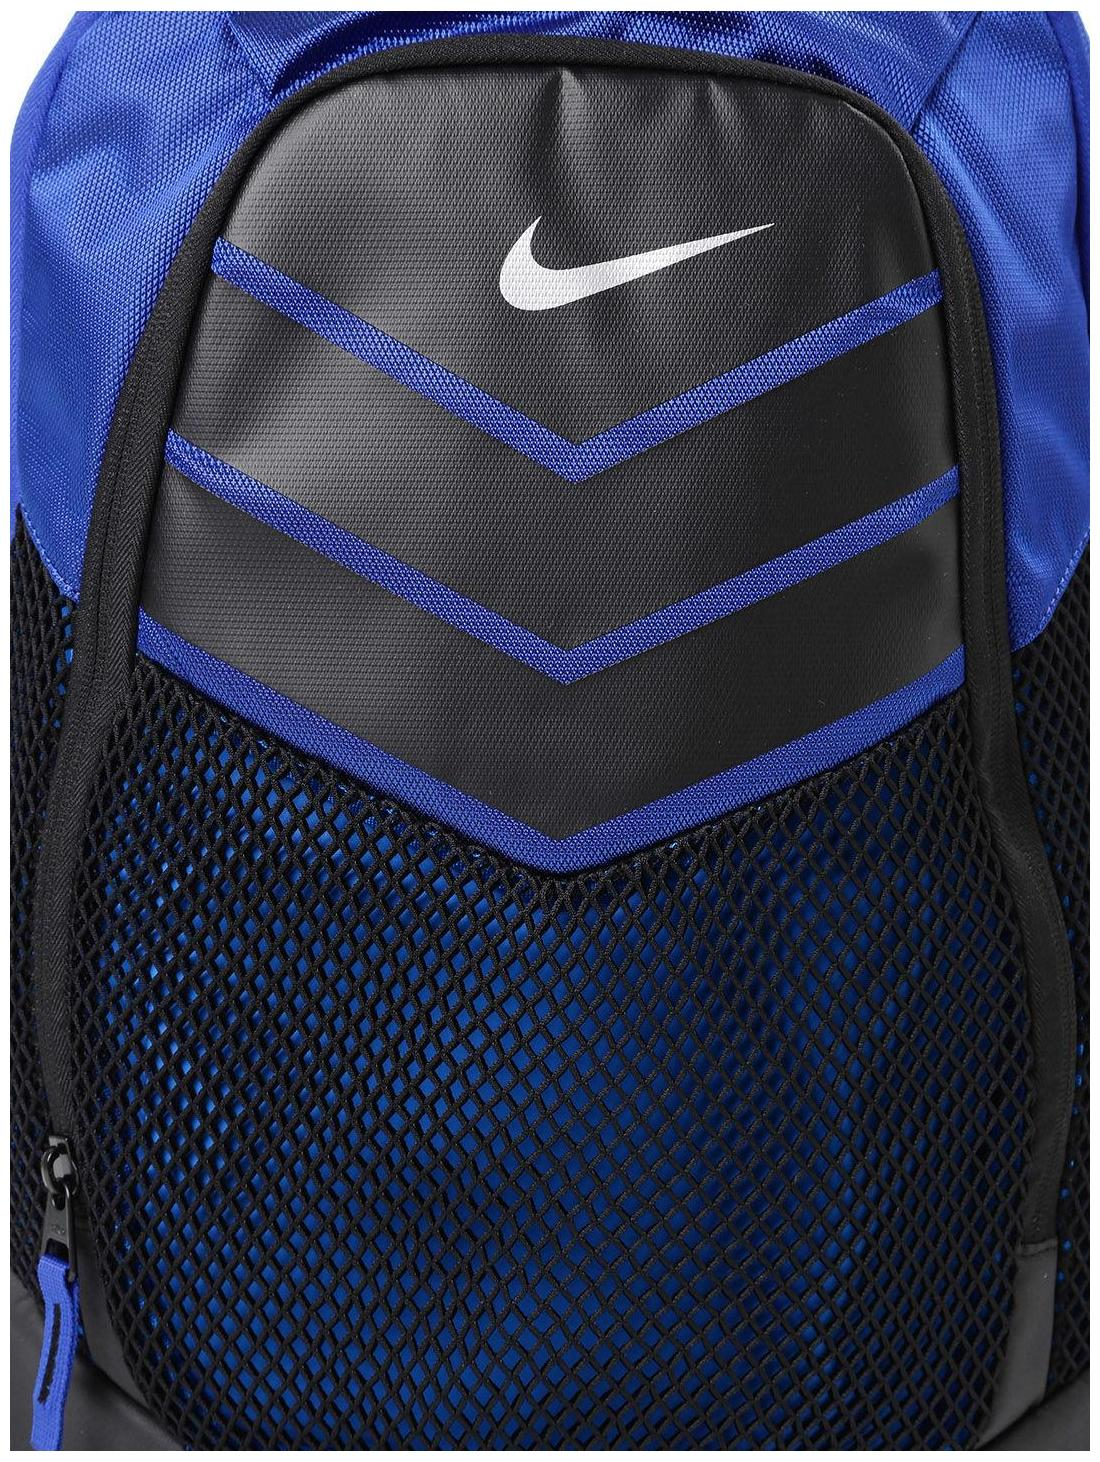 69f35f502e Buy Nike Max Air Vapor Power Blue-Black Backpack Online at Low Prices in  India - Paytmmall.com